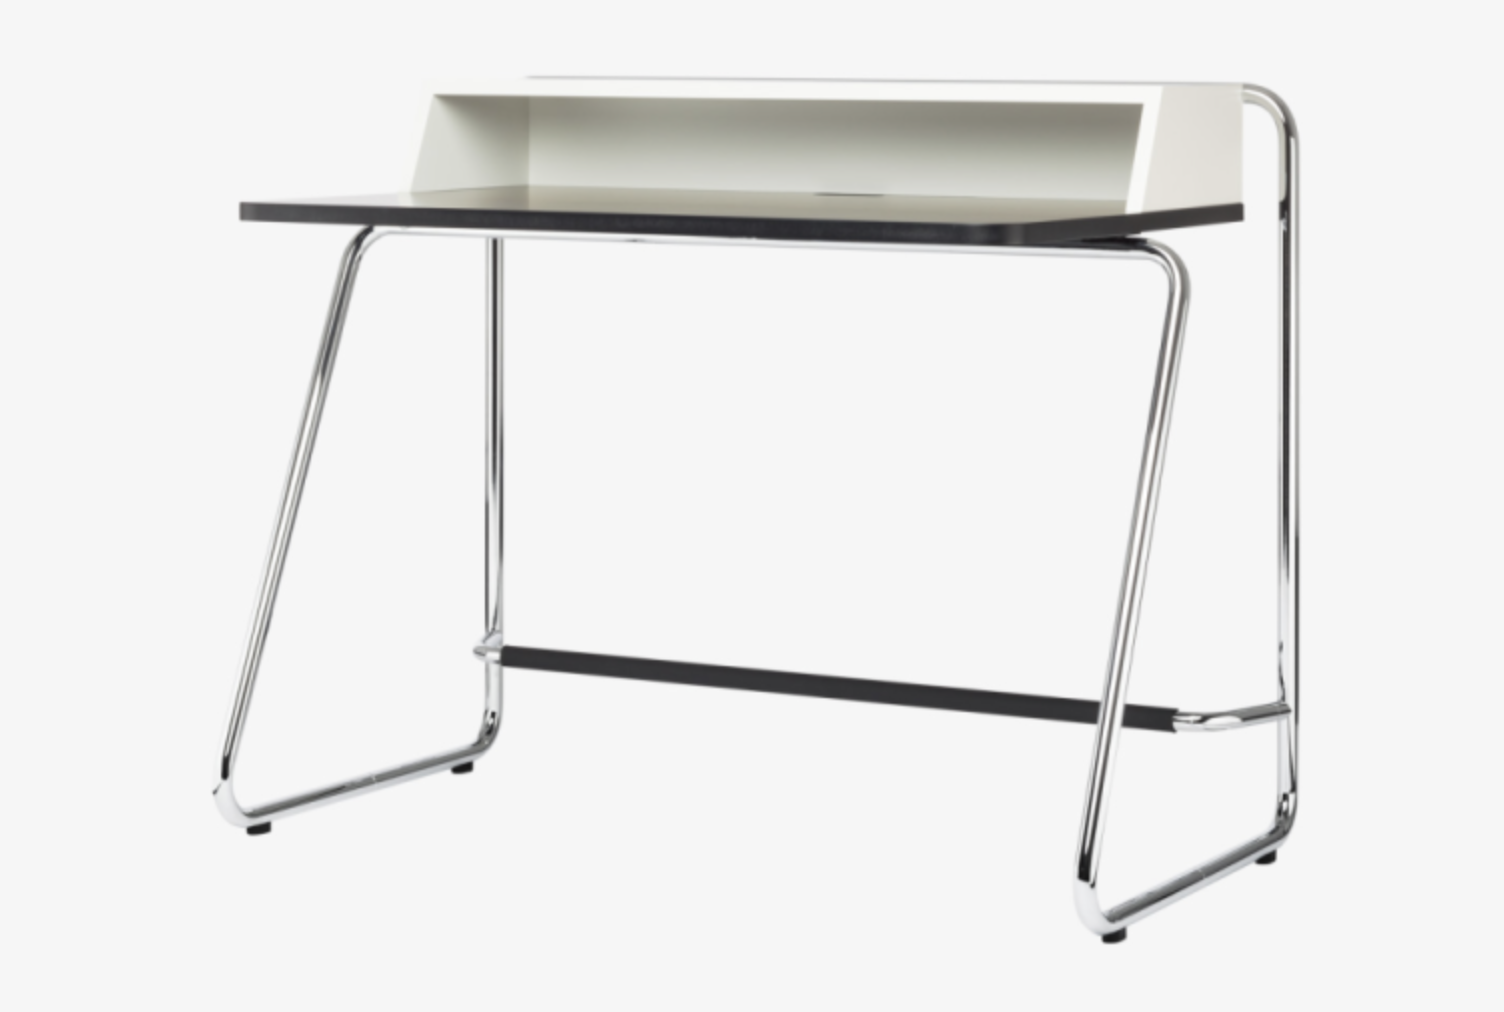 Vanderlindeinterieur_Thonet desk S1200